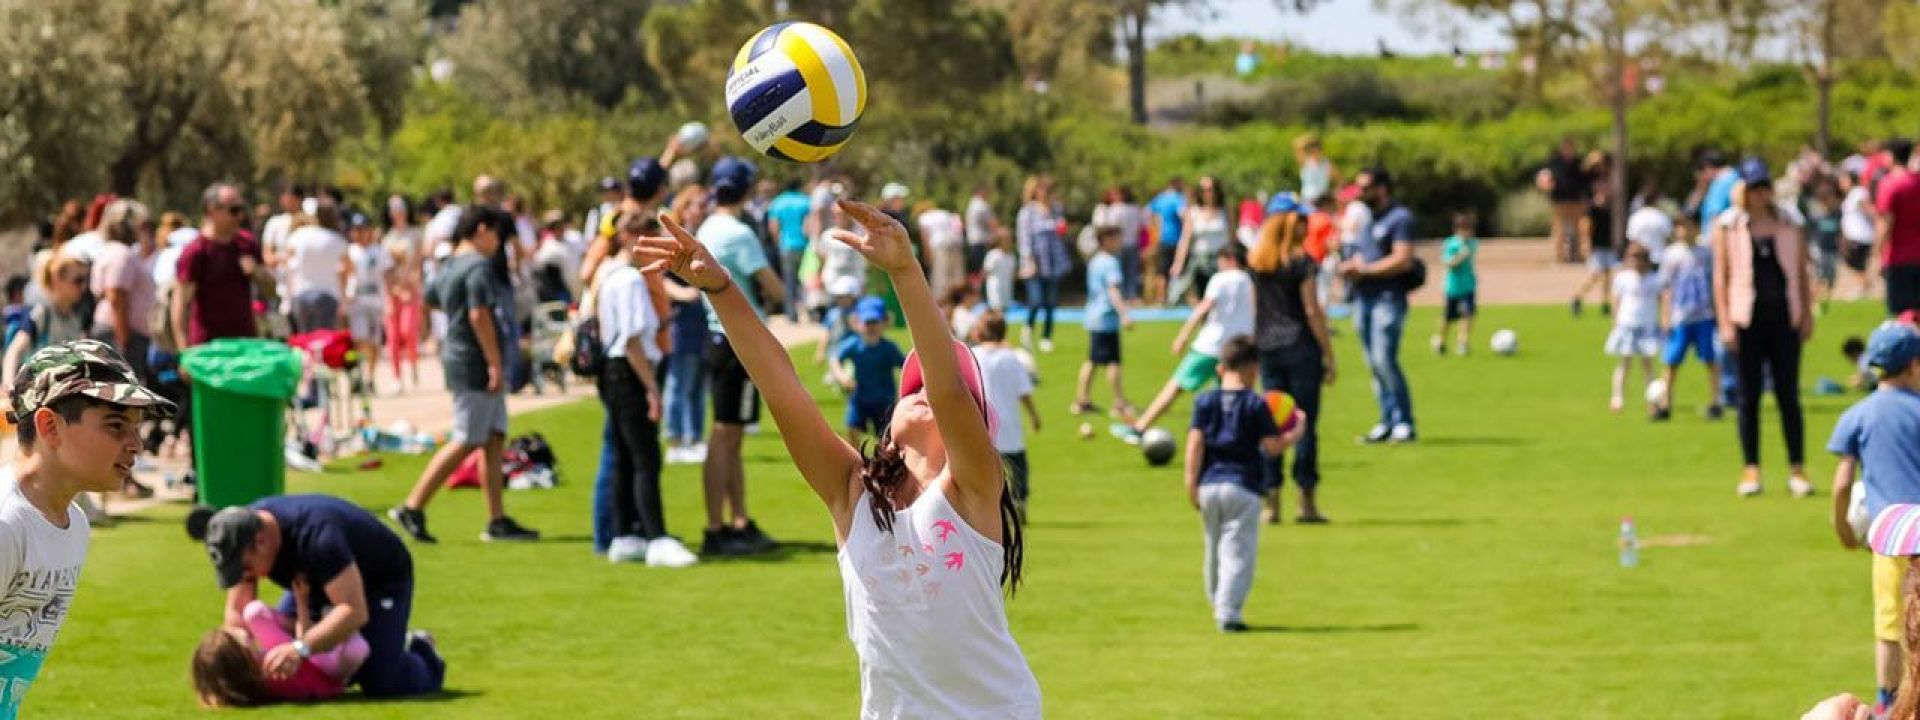 Discover your talent in sports - Εικόνα